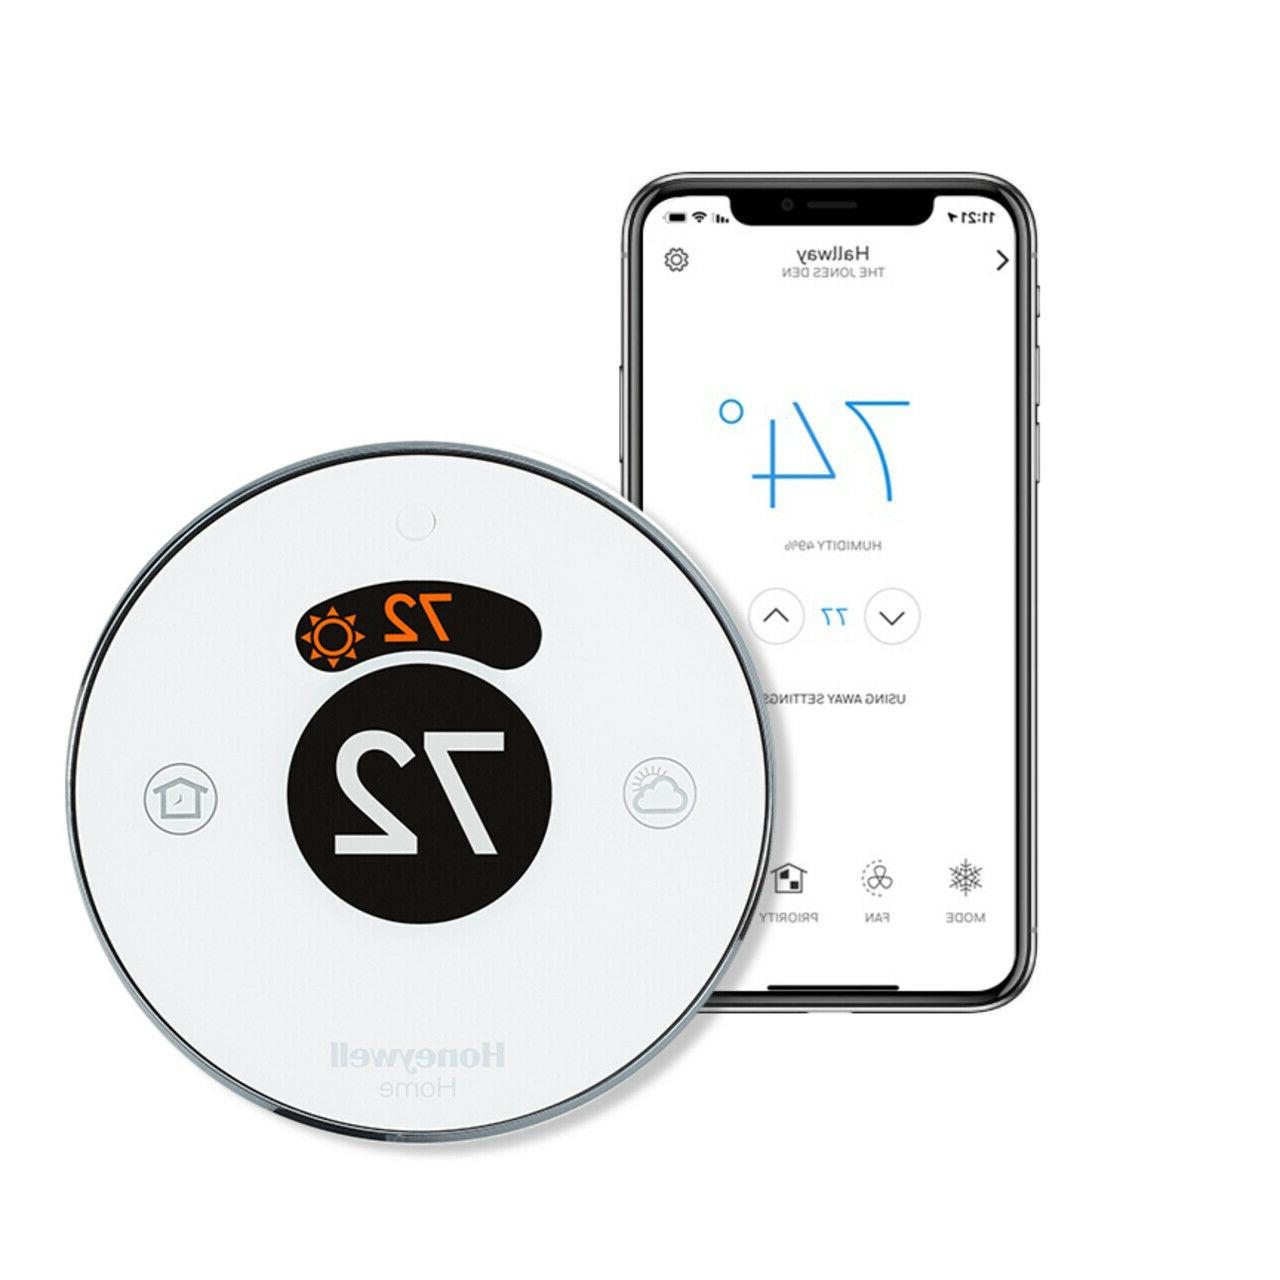 round smart wifi thermostat second generation